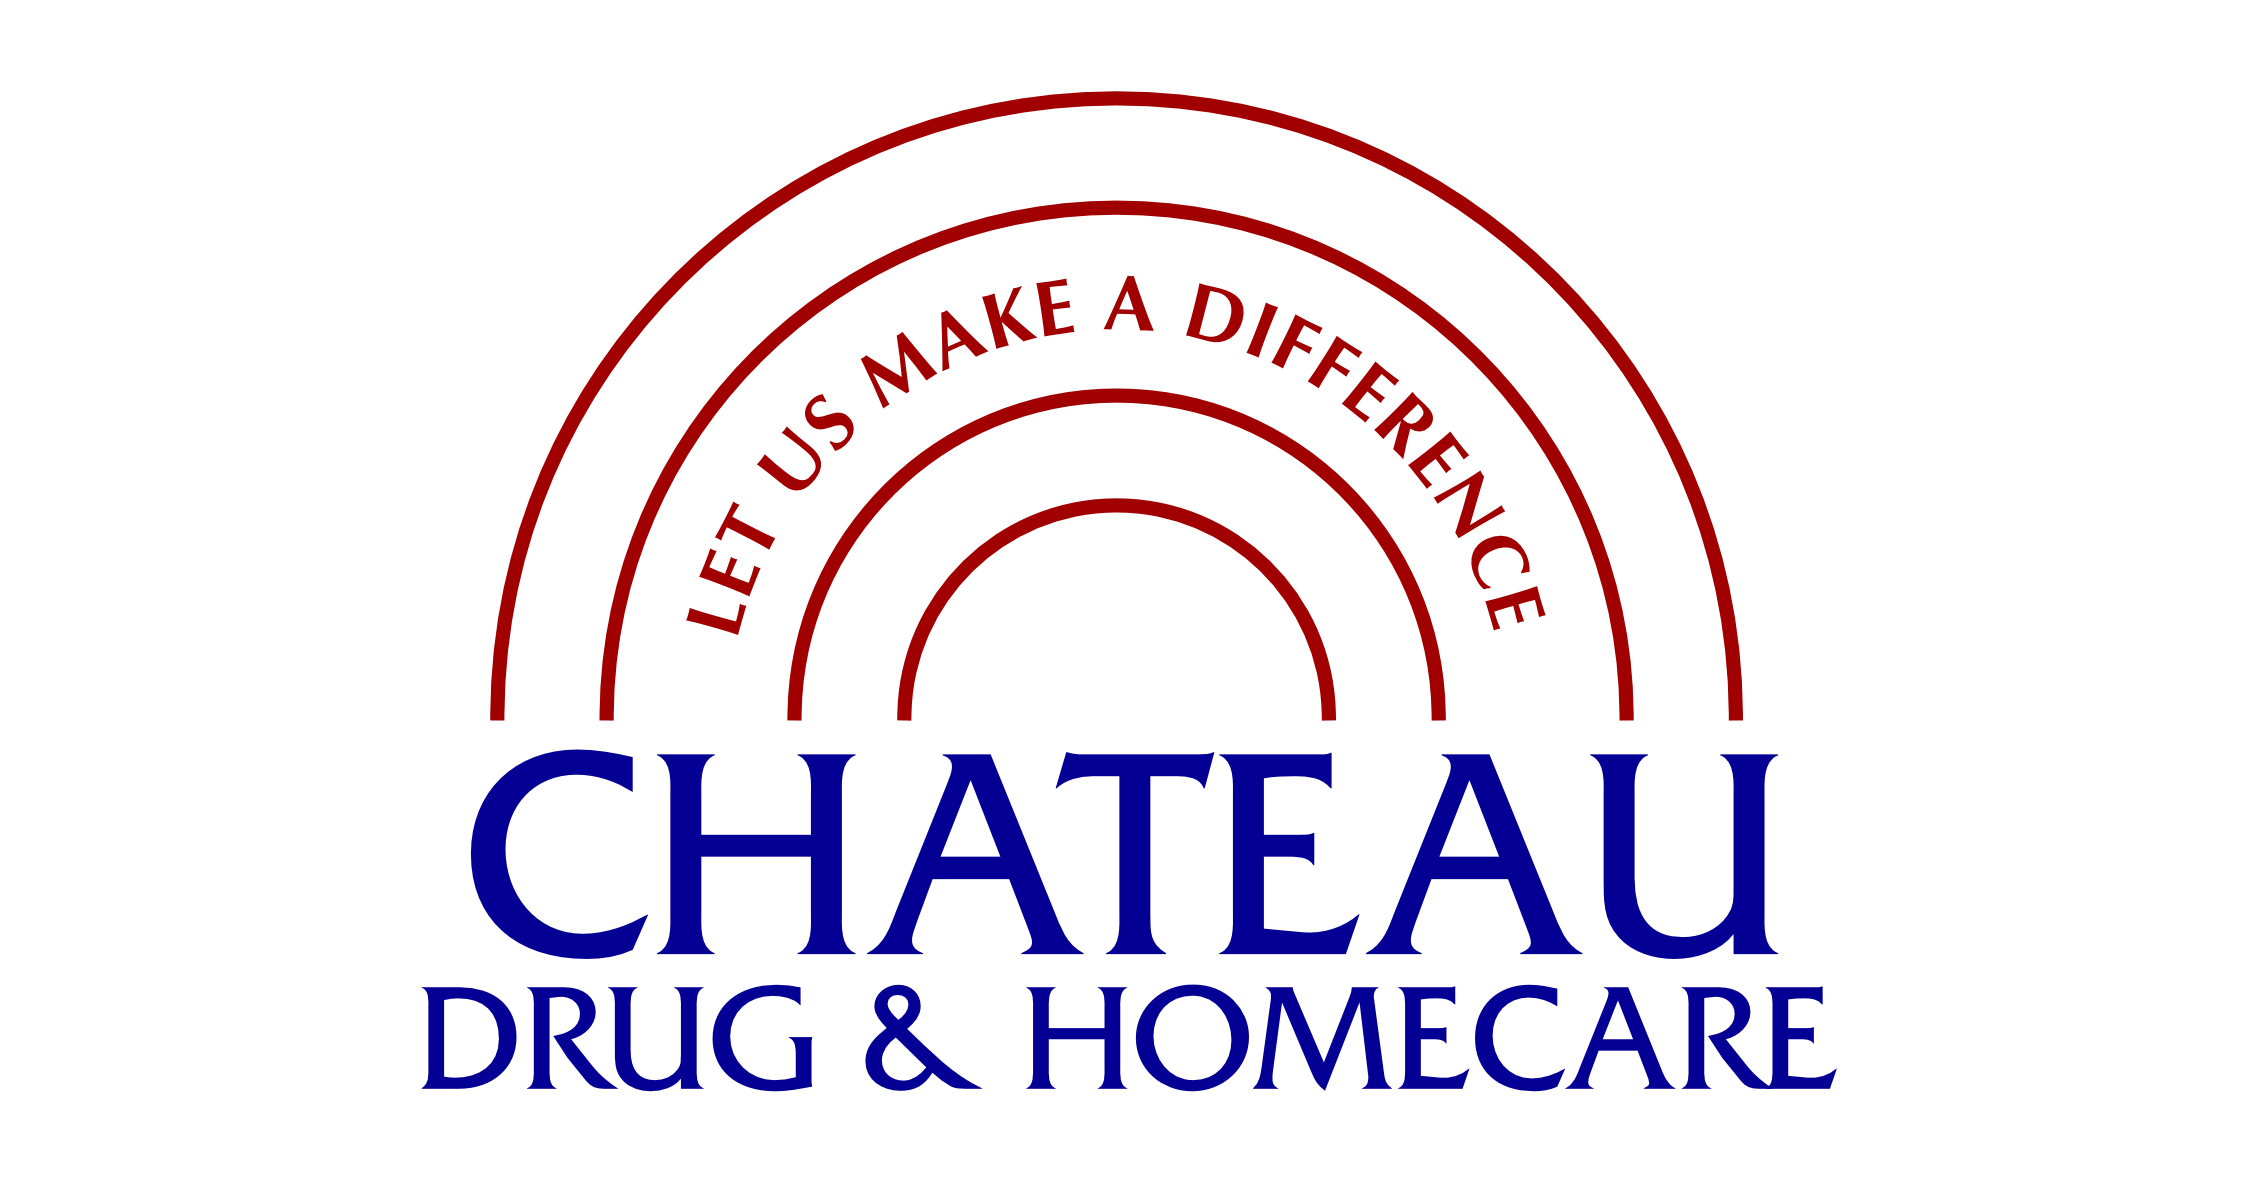 Chateau Drug And Homecare